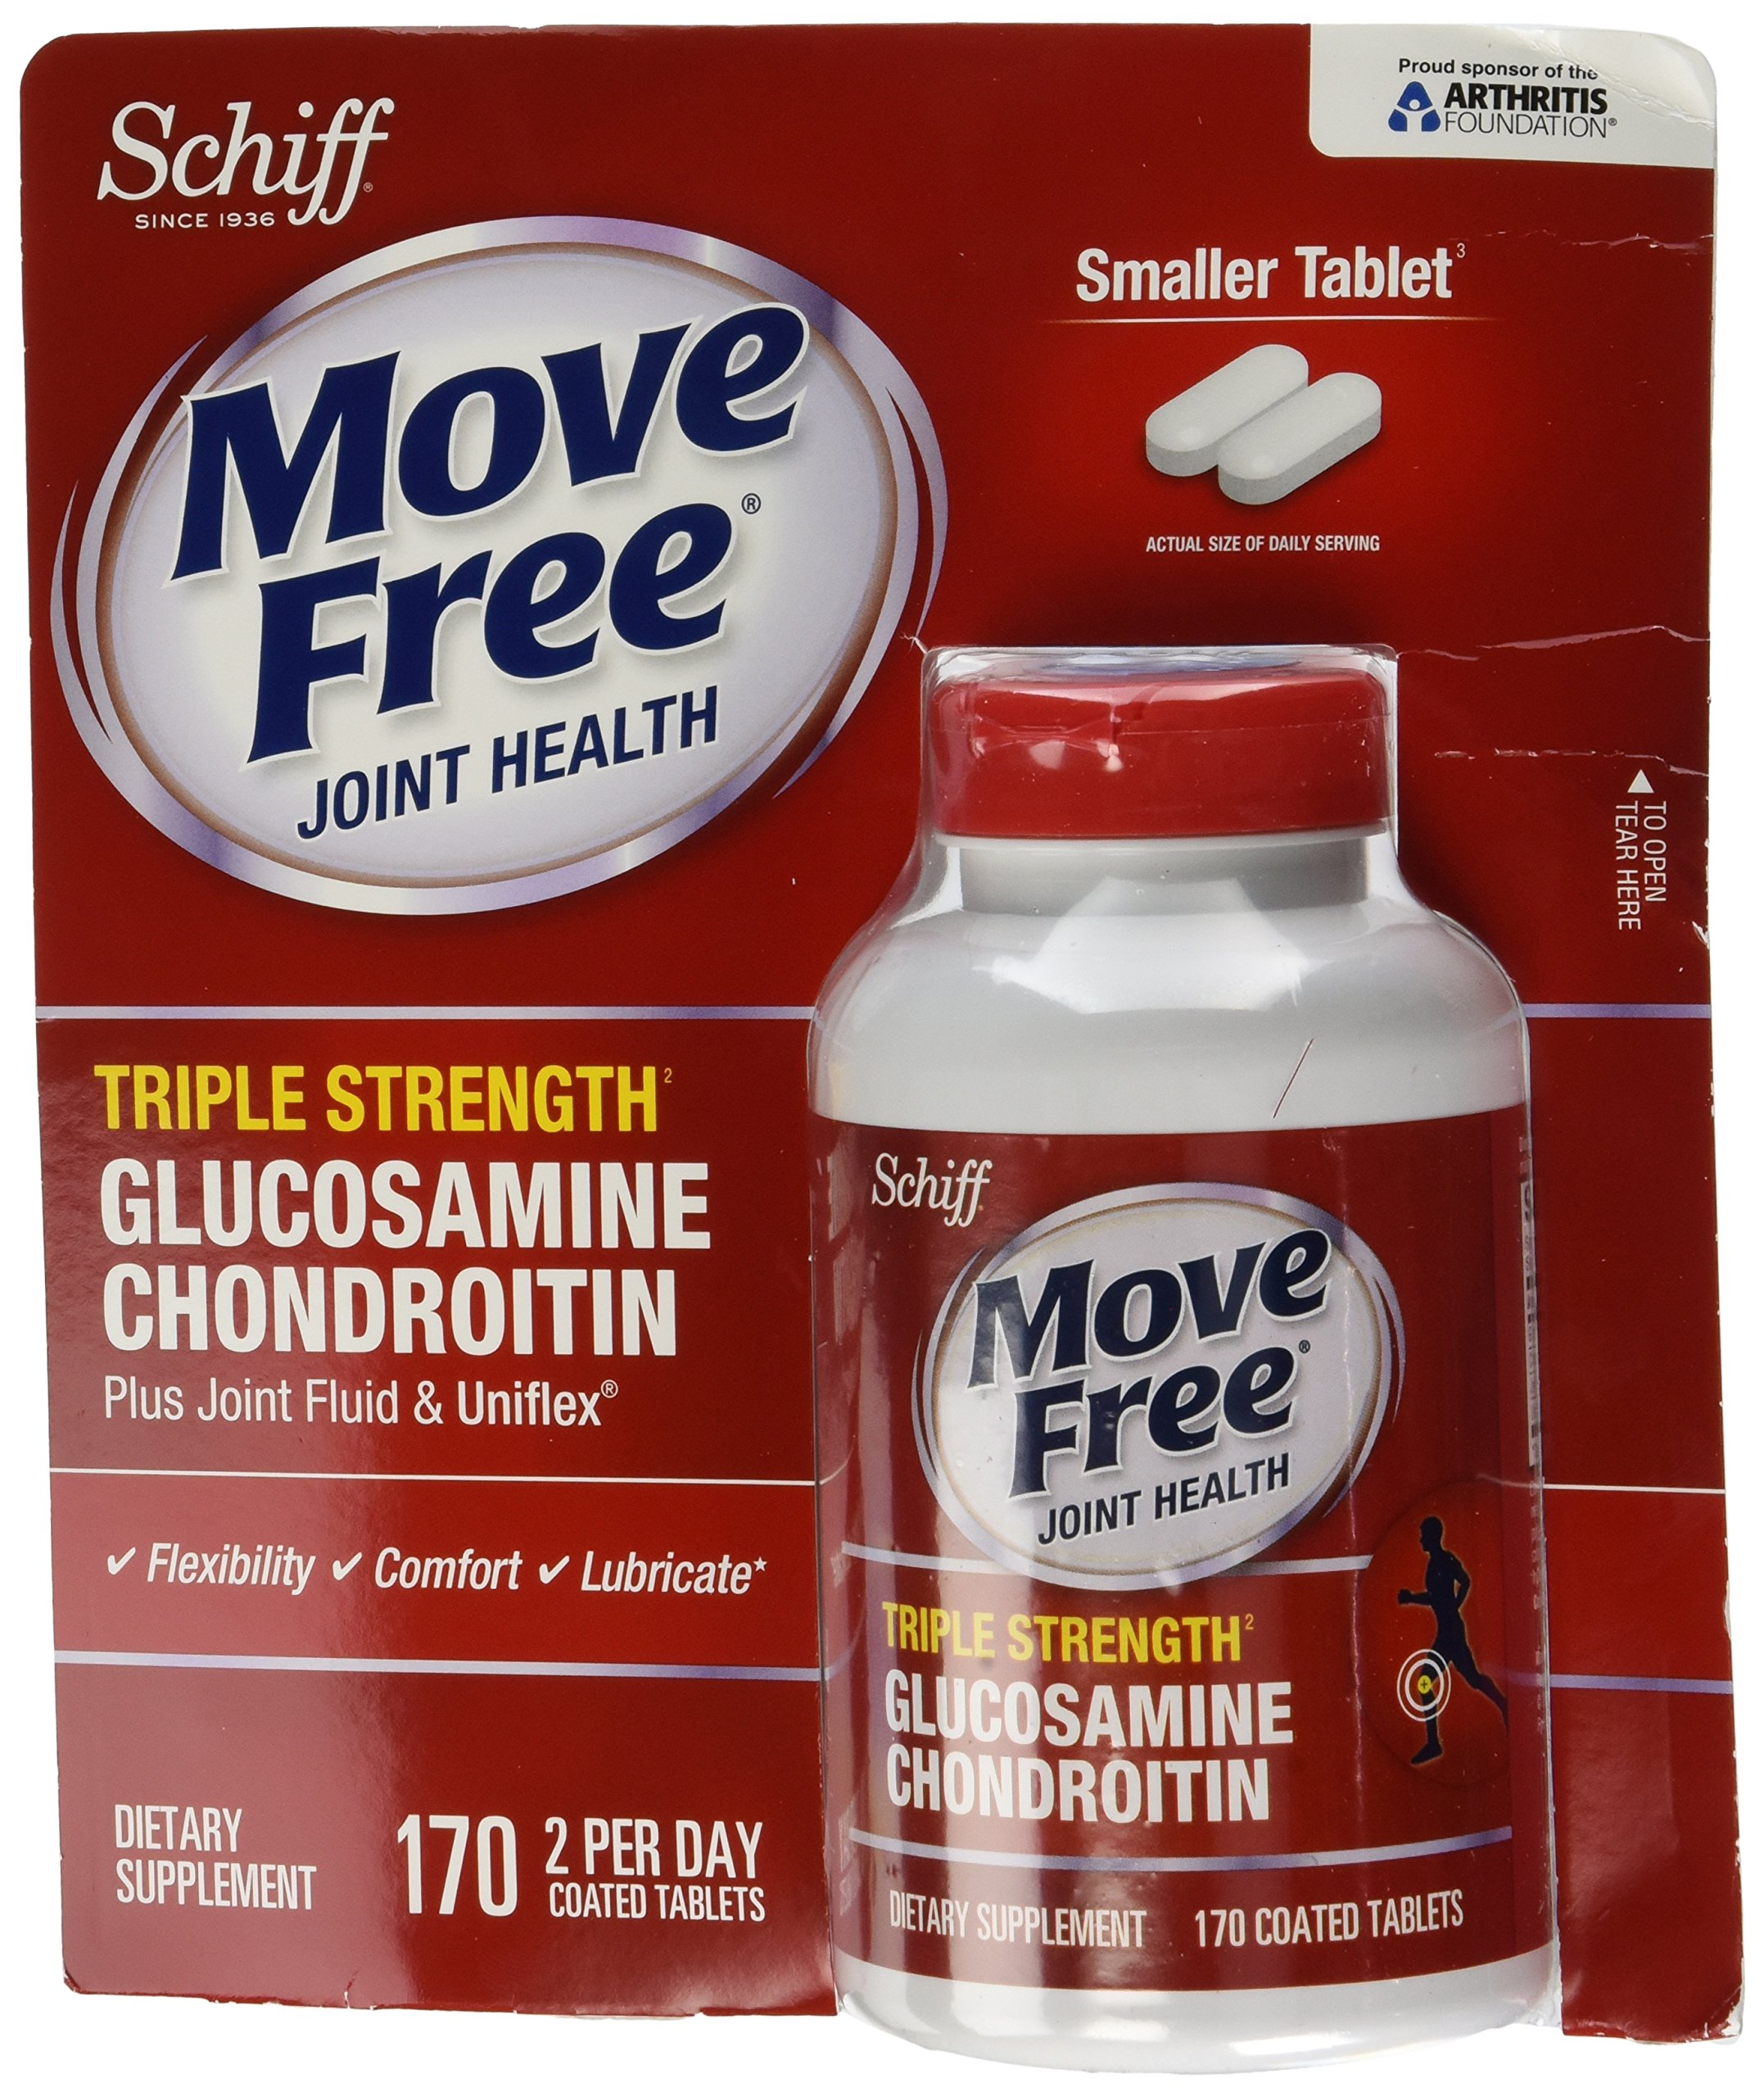 Schiff Move Free Joint Health Triple Strength Glucosamine Chondroitin - 4 Bottles, 170 Tablets Each